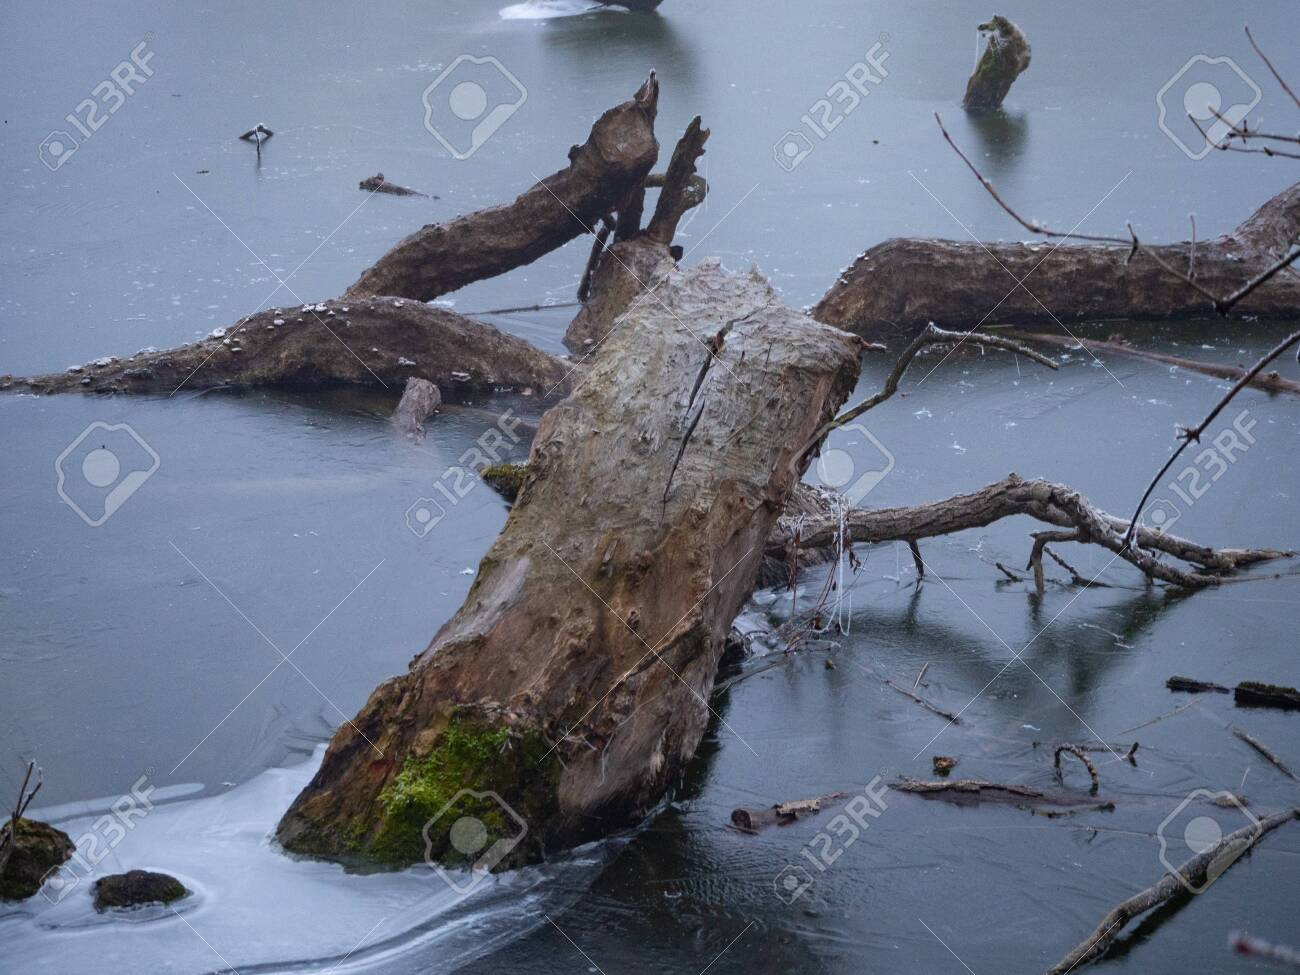 Piece of wood frozen in the ice of a pond - 140561821